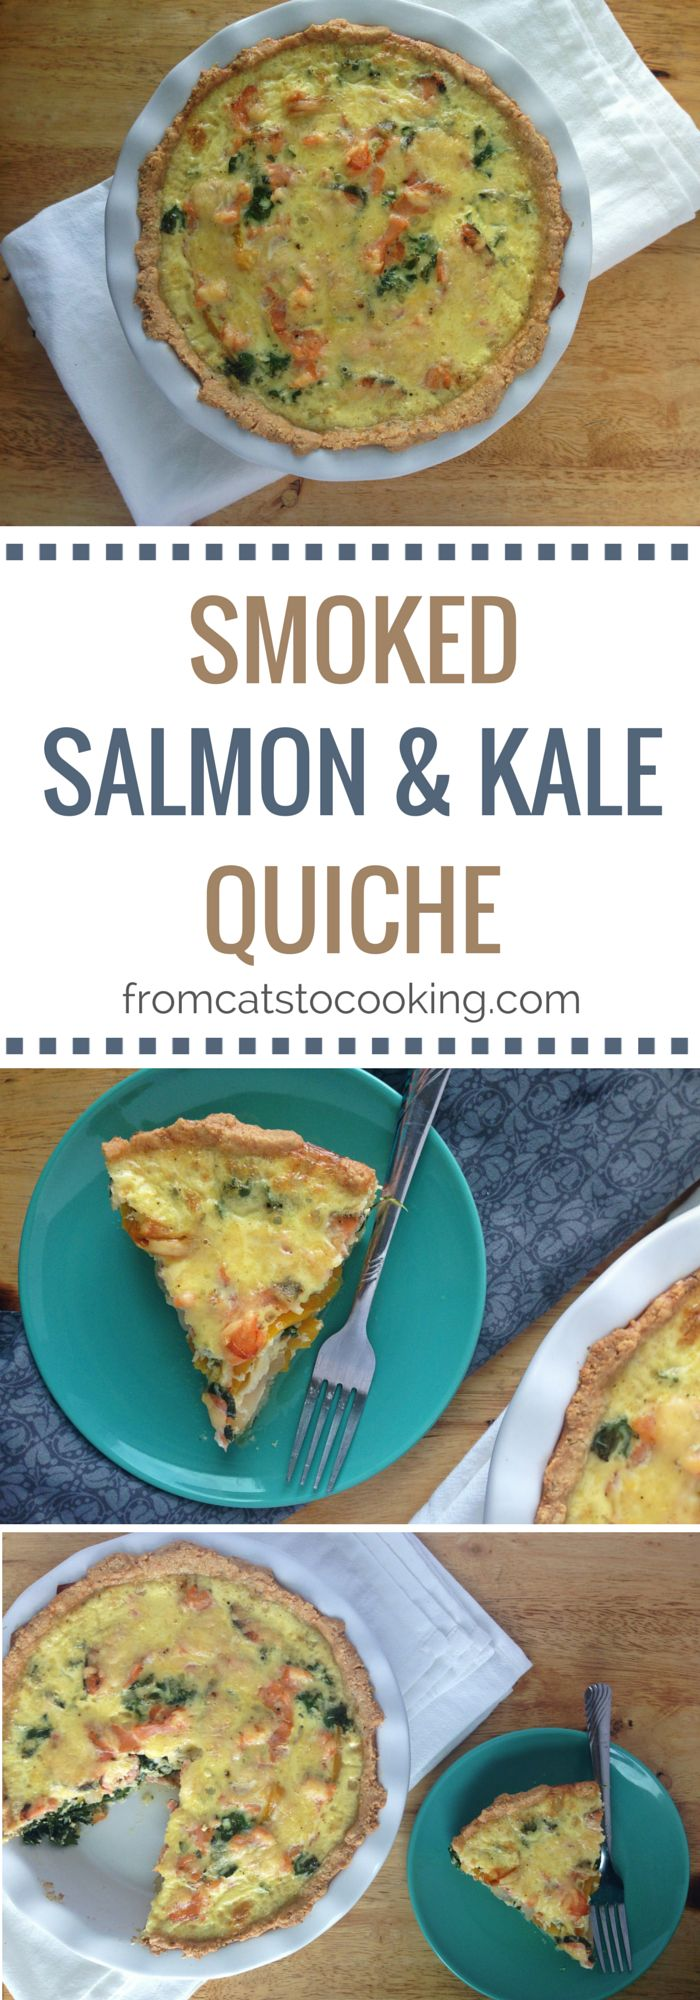 This smoked salmon and kale quiche recipe is a great way to mix up your weekend breakfast routine. It uses a gluten-free crust and can easily be made dairy free!